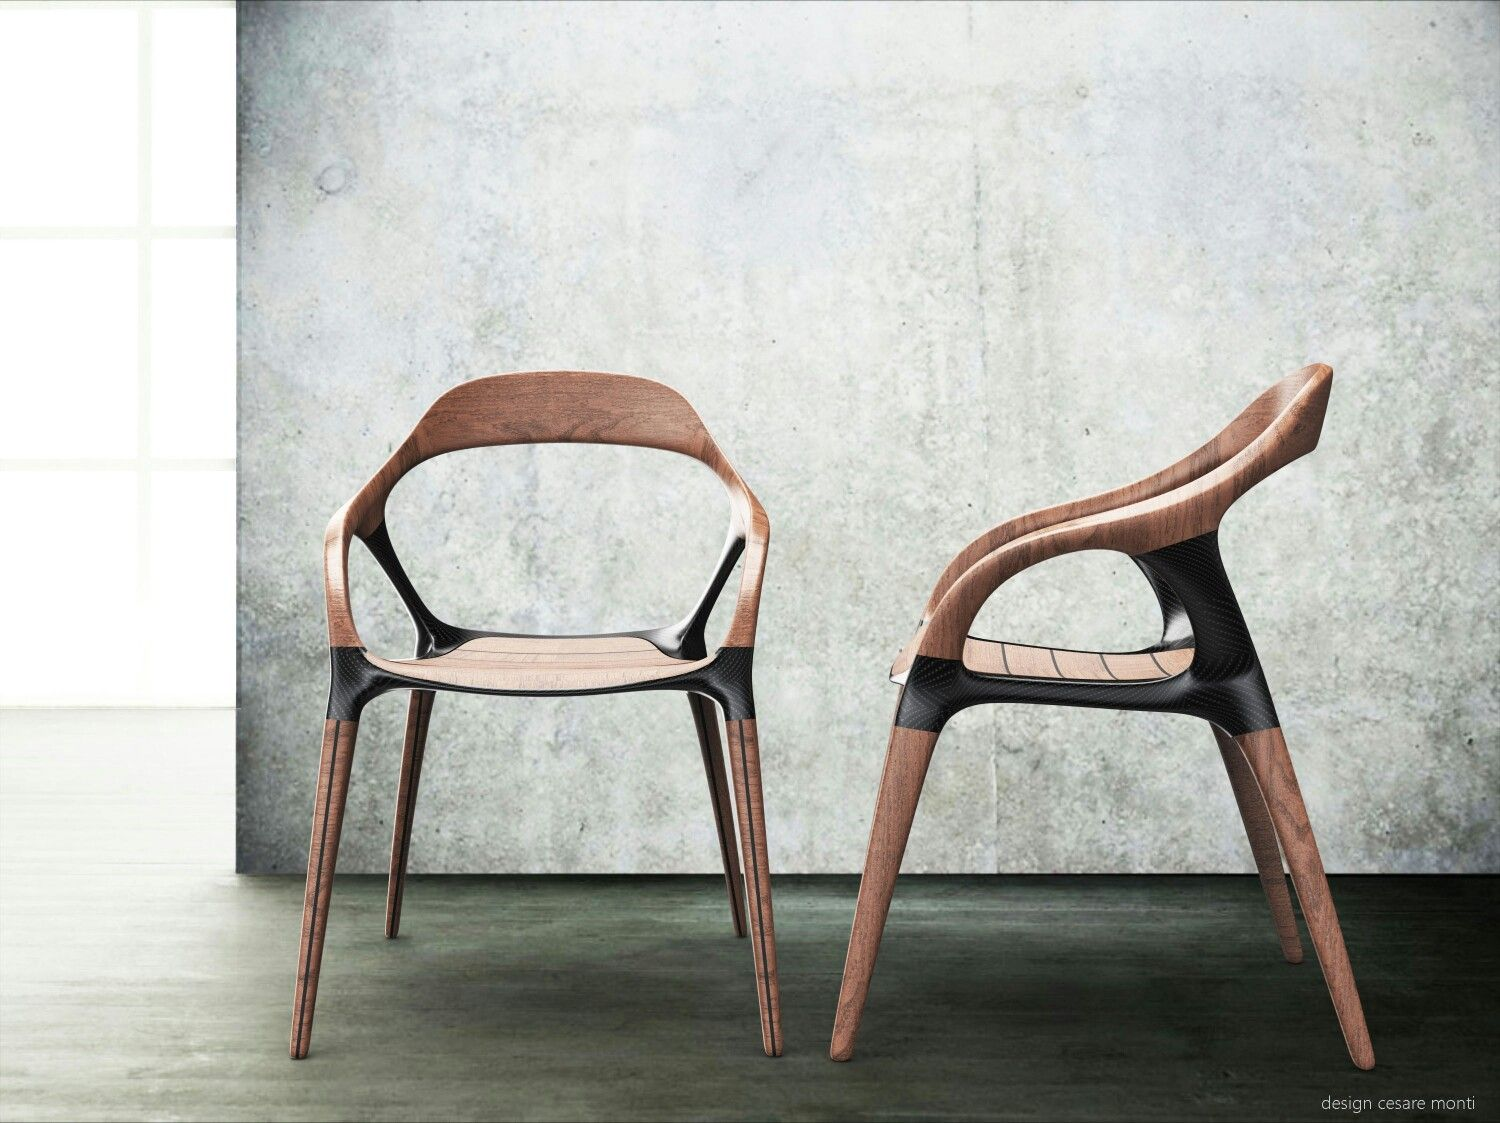 OWAN Carbon Fiber And Wood Chair